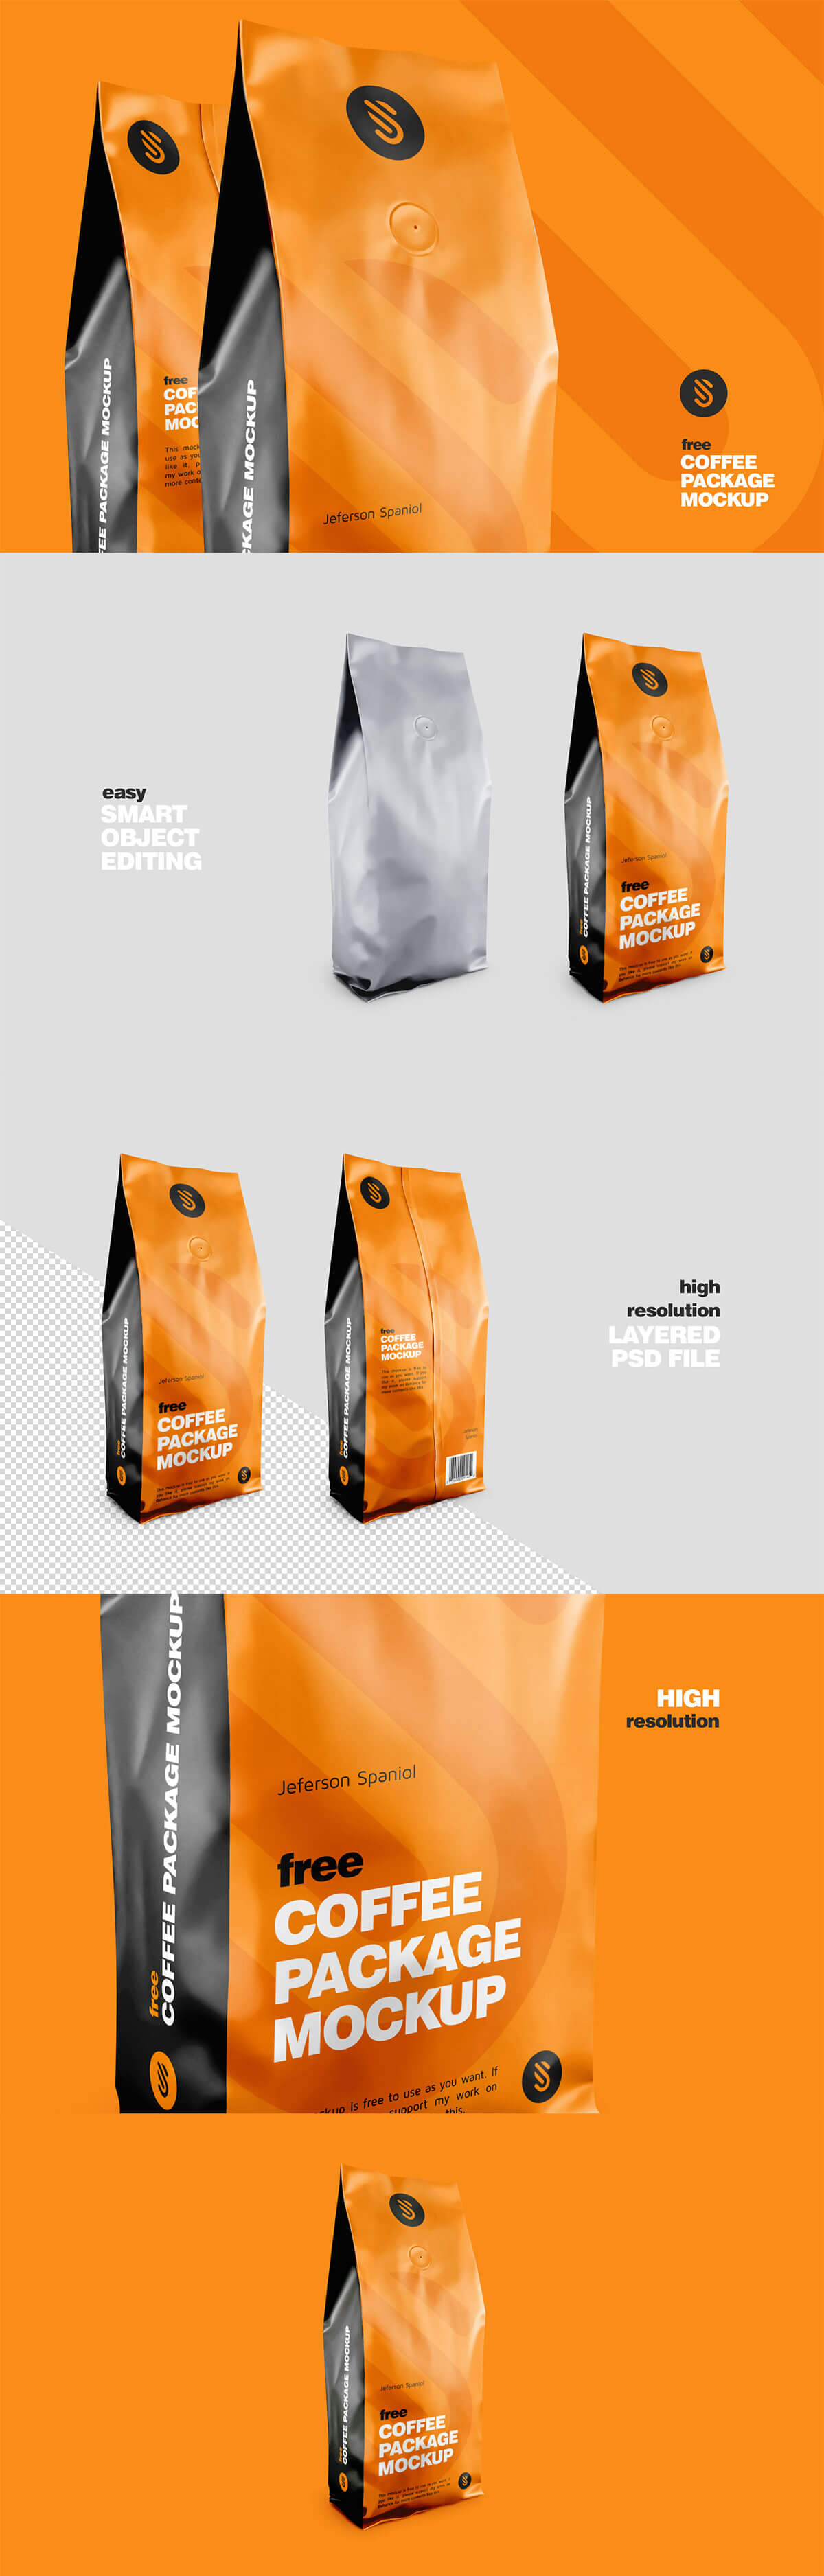 Free Coffee Package Mockup